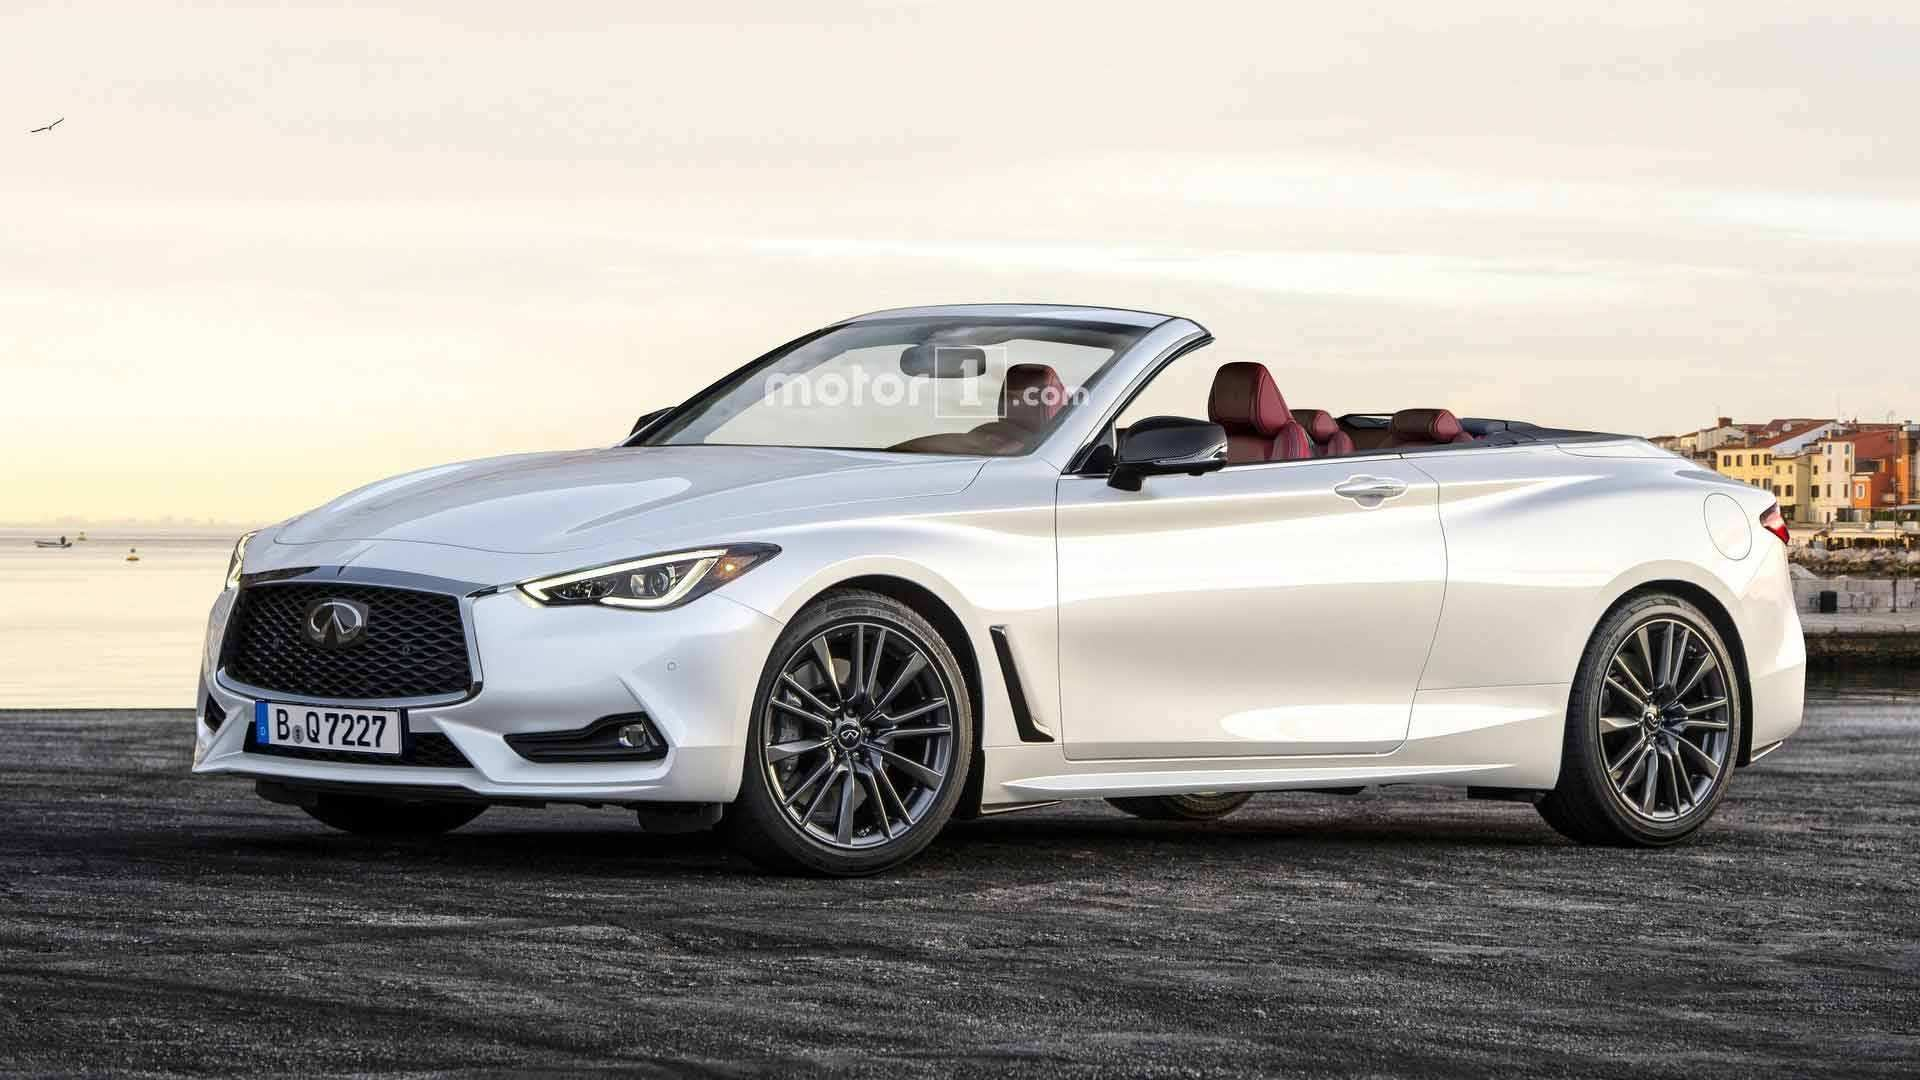 58 Best 2020 Infiniti Q60 Coupe Convertible Images